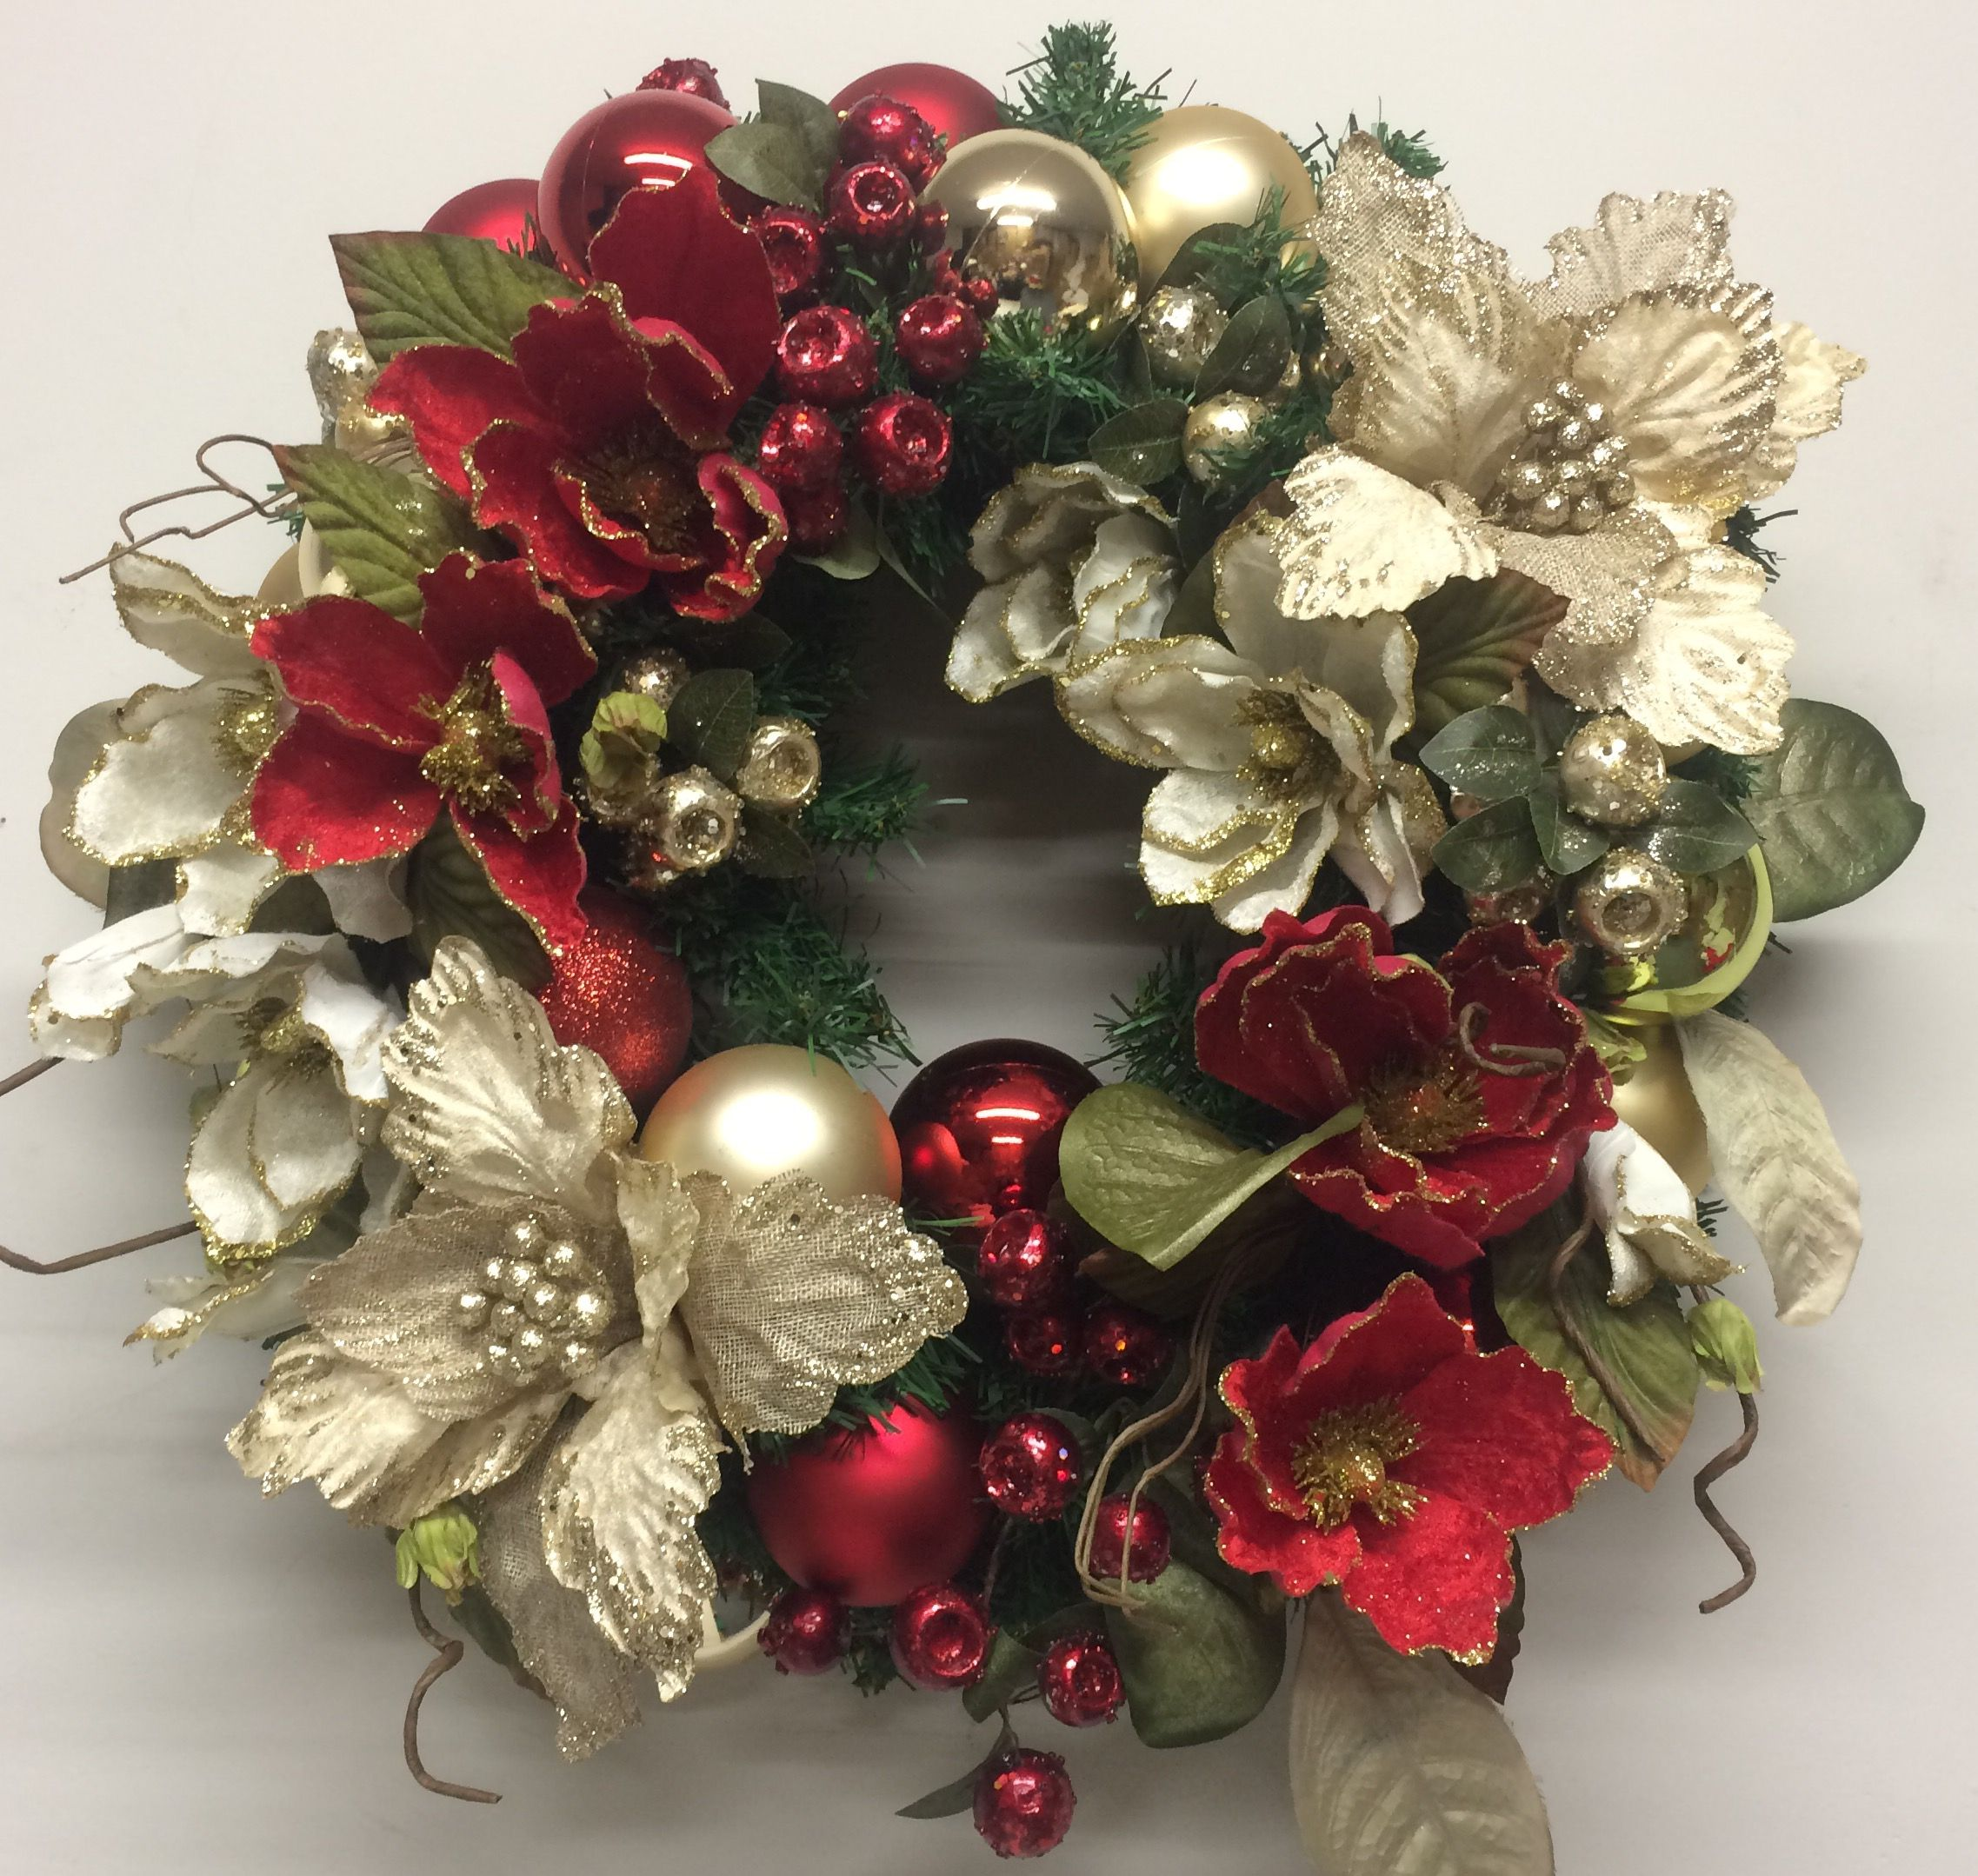 floral Christmas wreath in red and gold